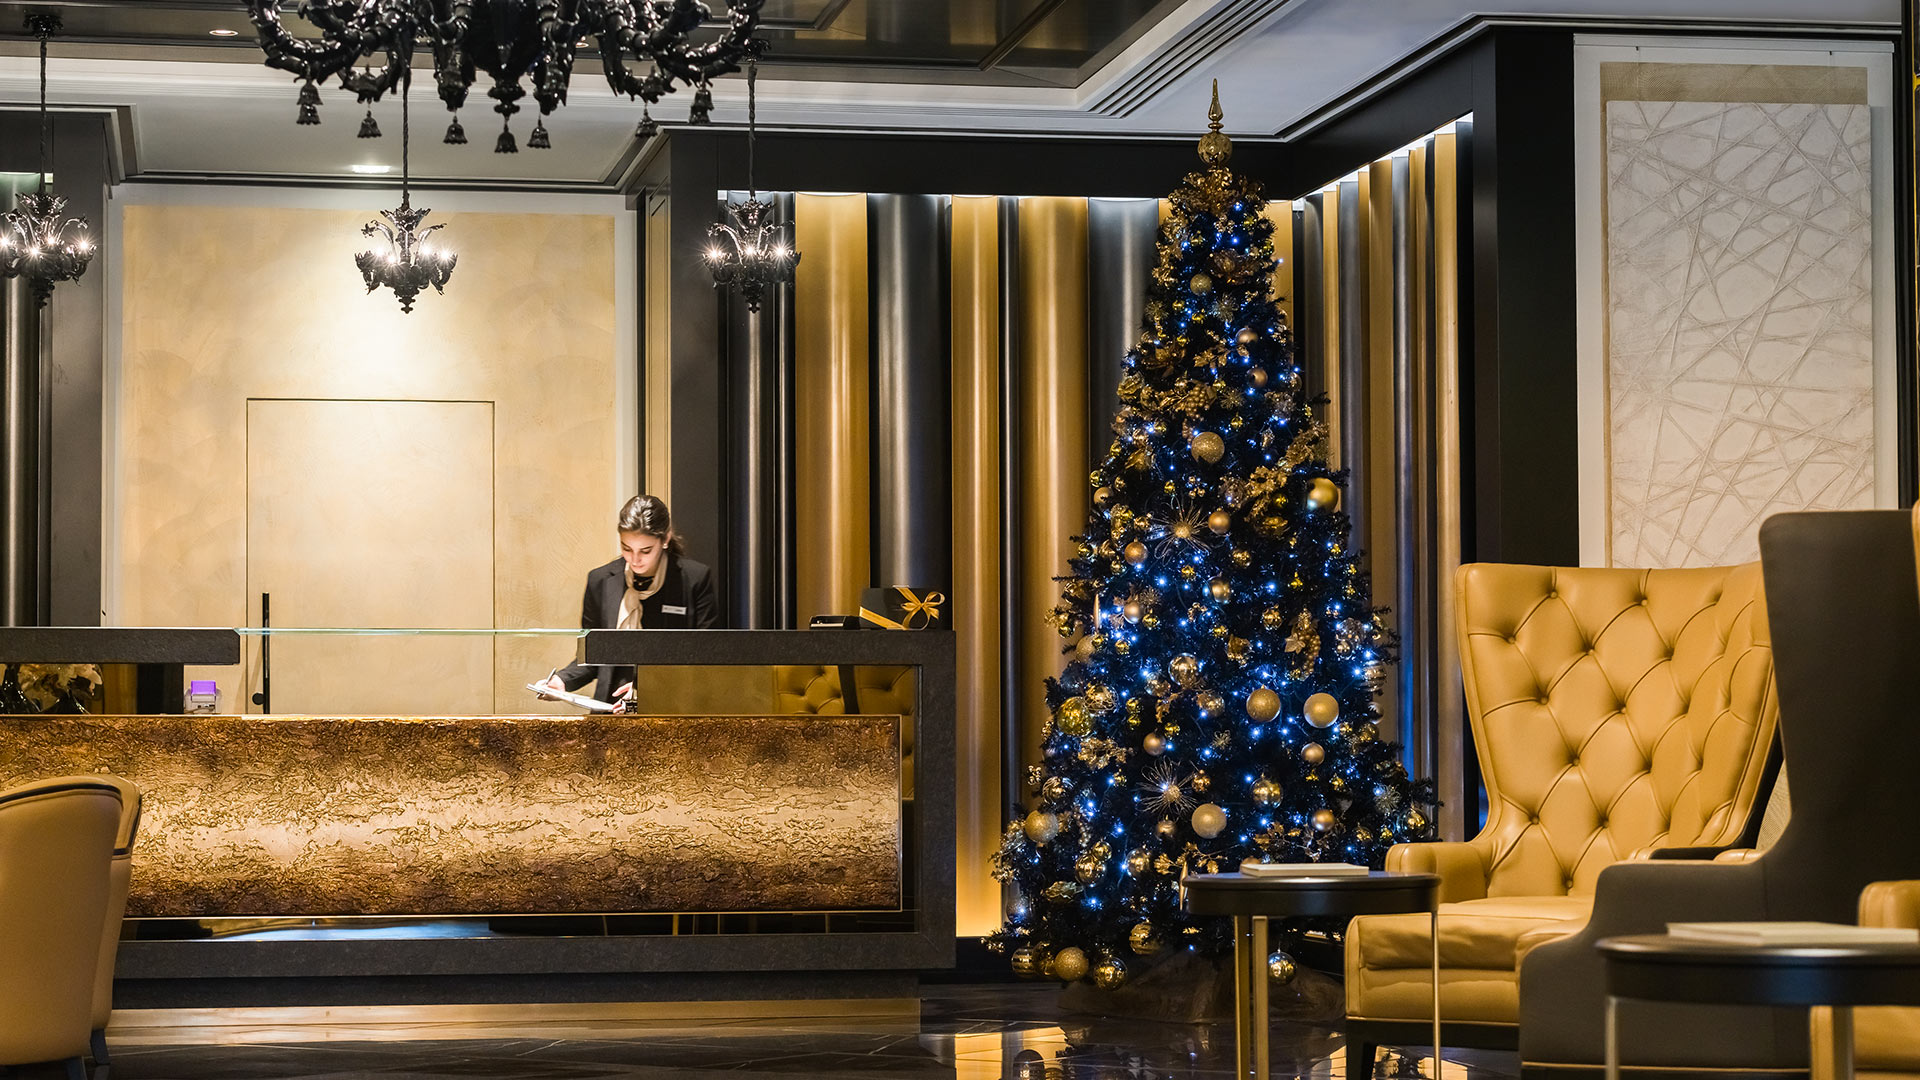 Baglioni Hotels Luxury Hotel in London 5 Star Baglioni Hotel London